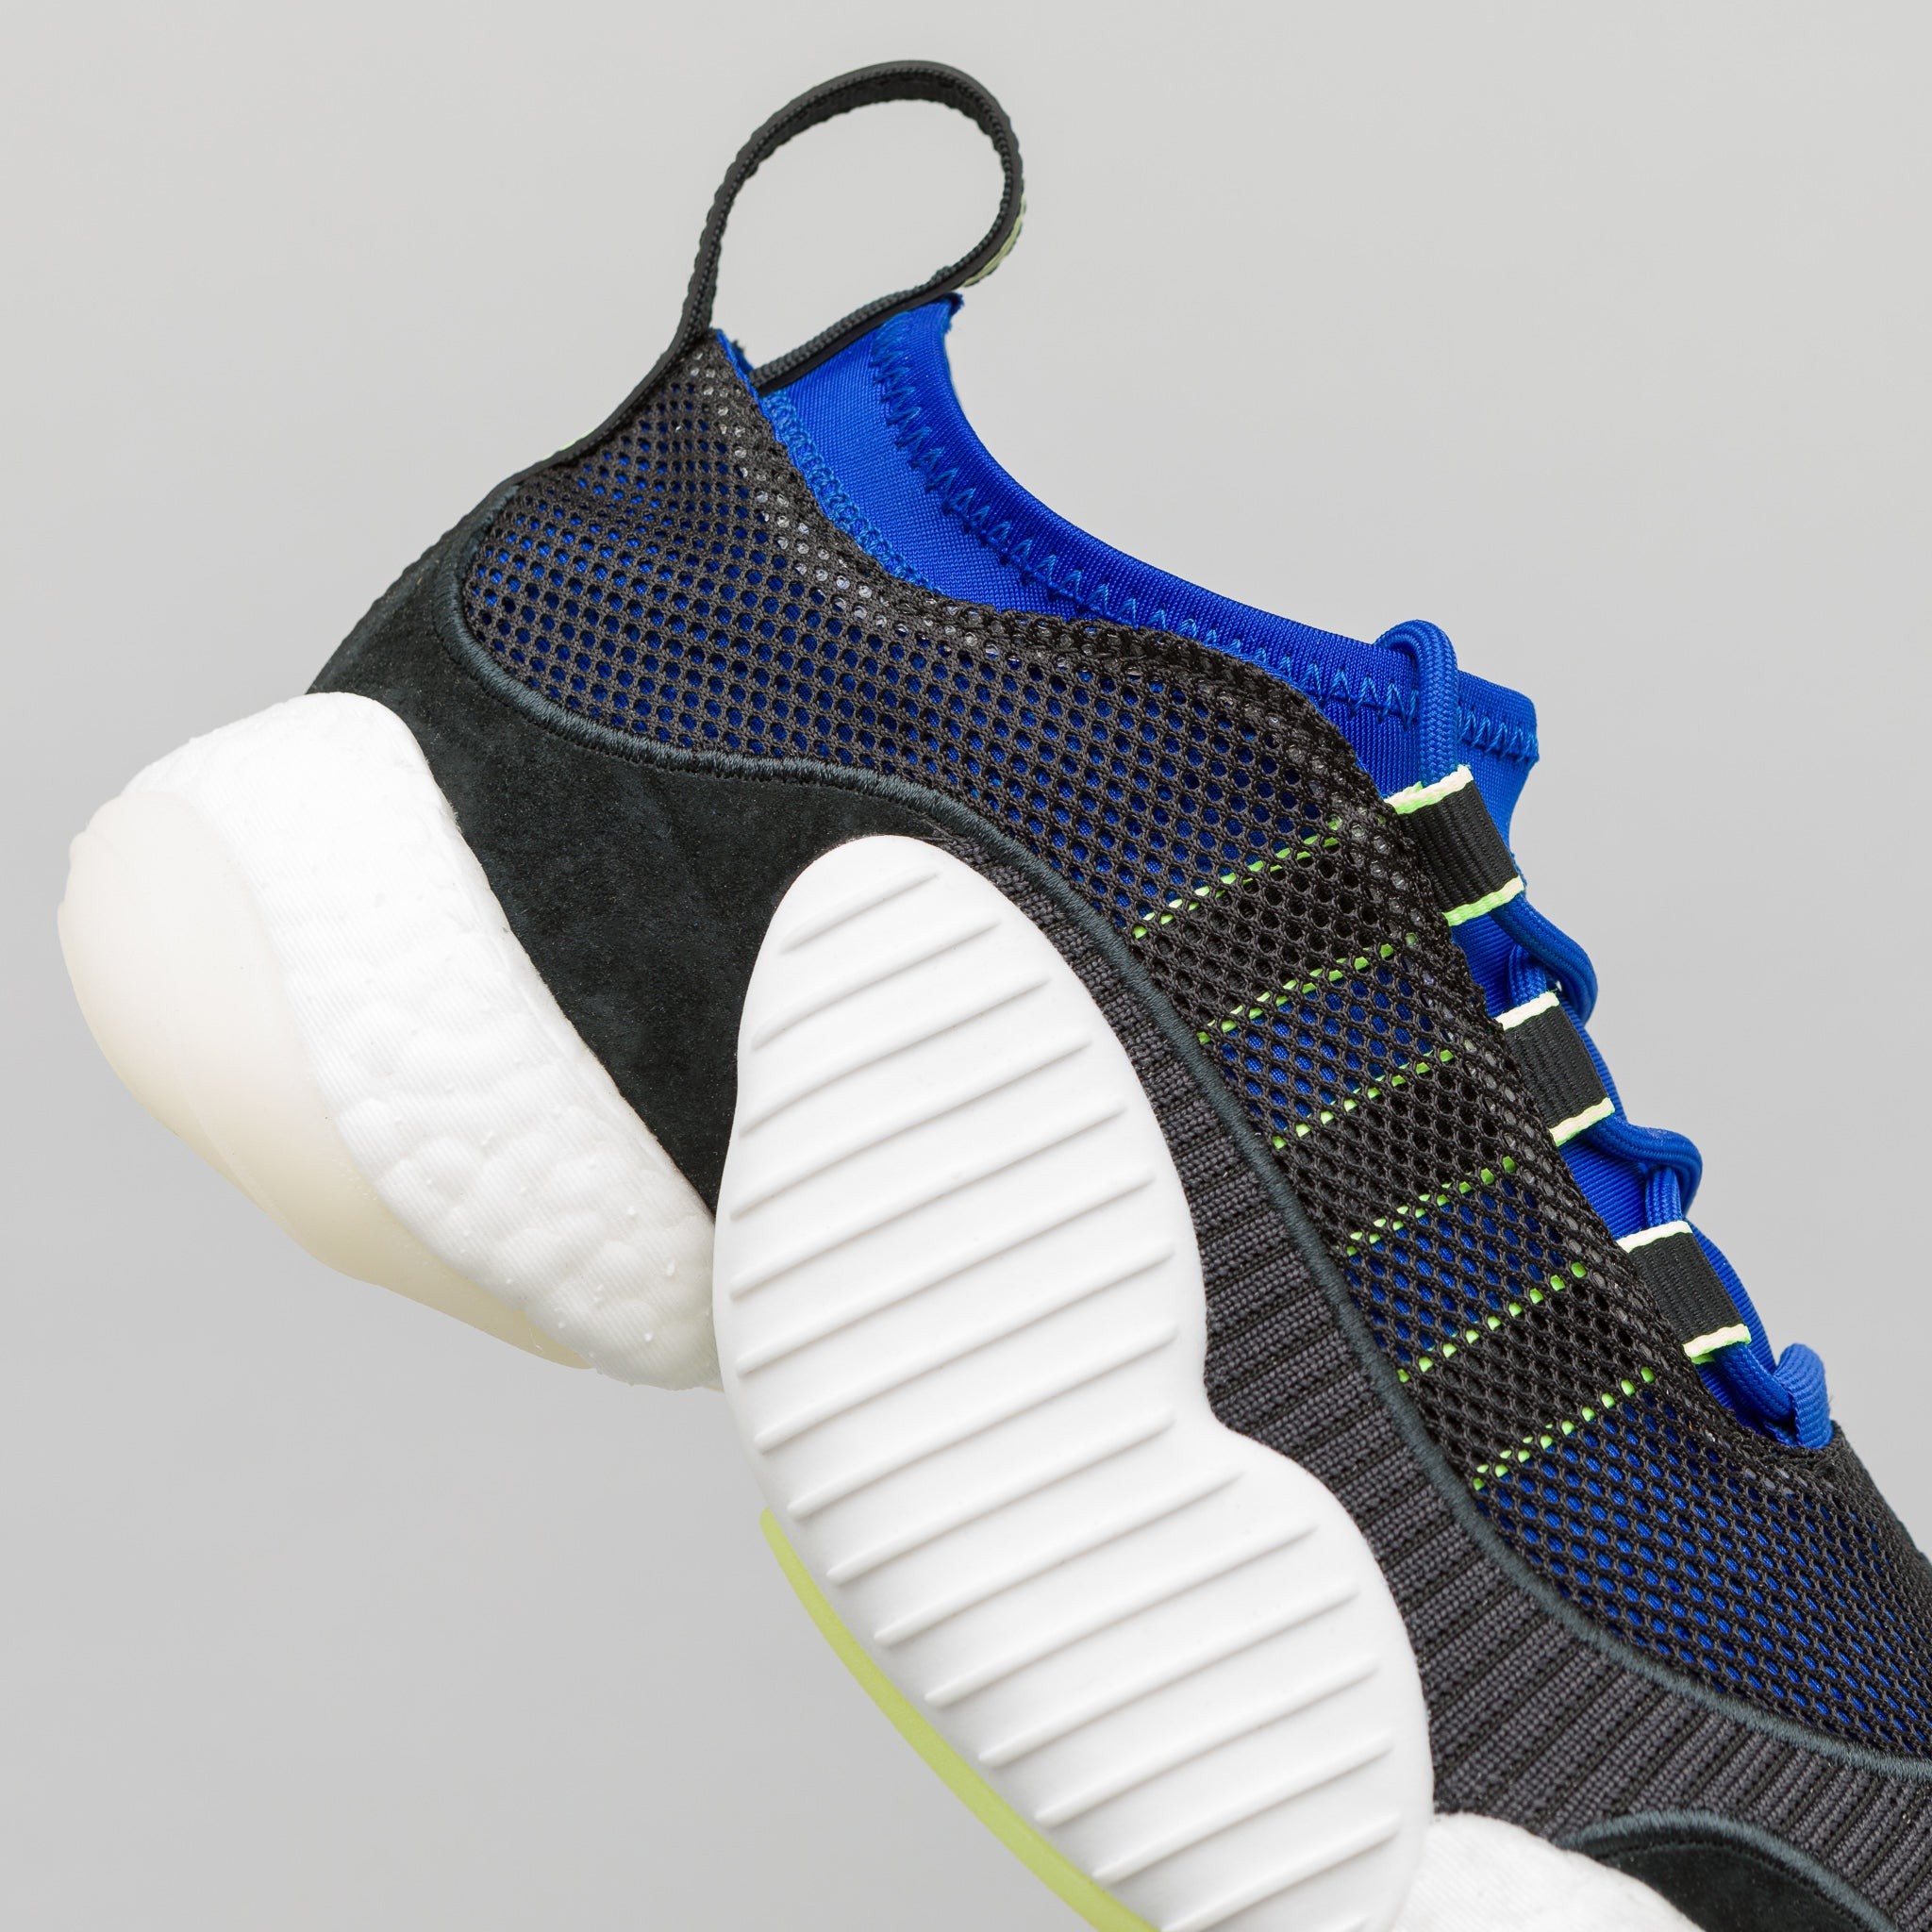 Crazy BYW Level II in Core Black/White